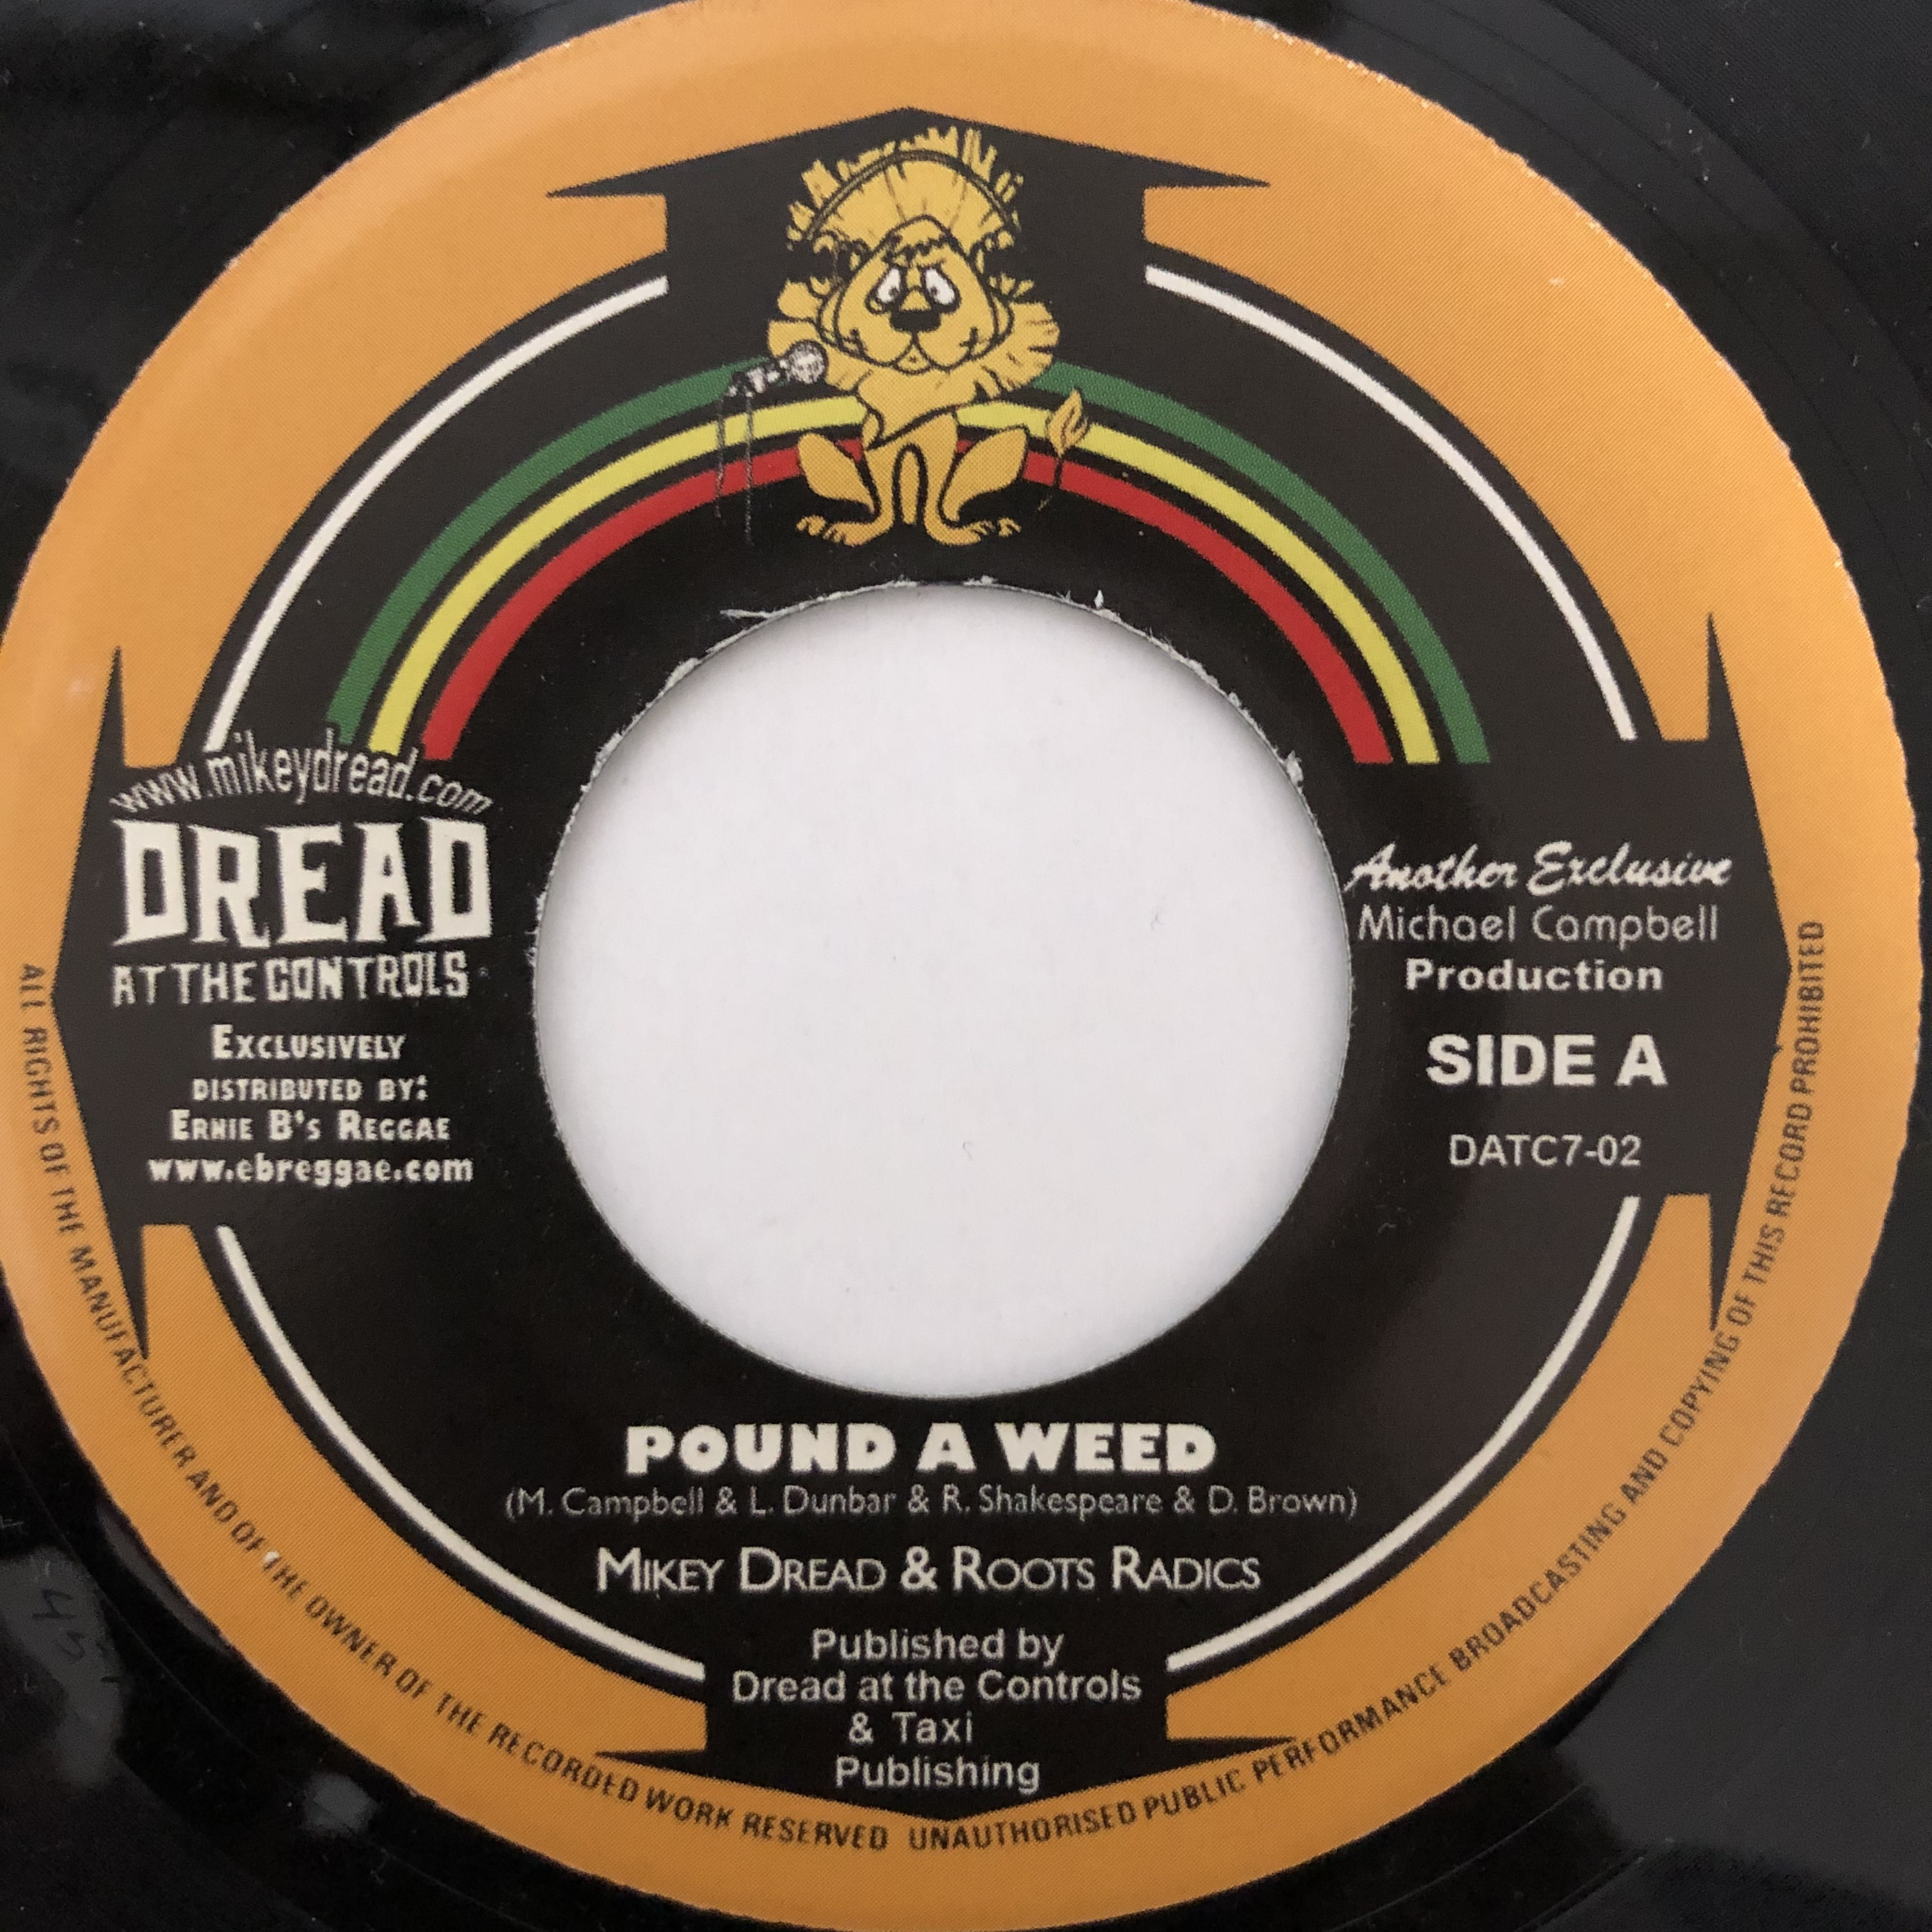 Mikey Dread & The Roots Radics - Pound A Weed【7-20473】